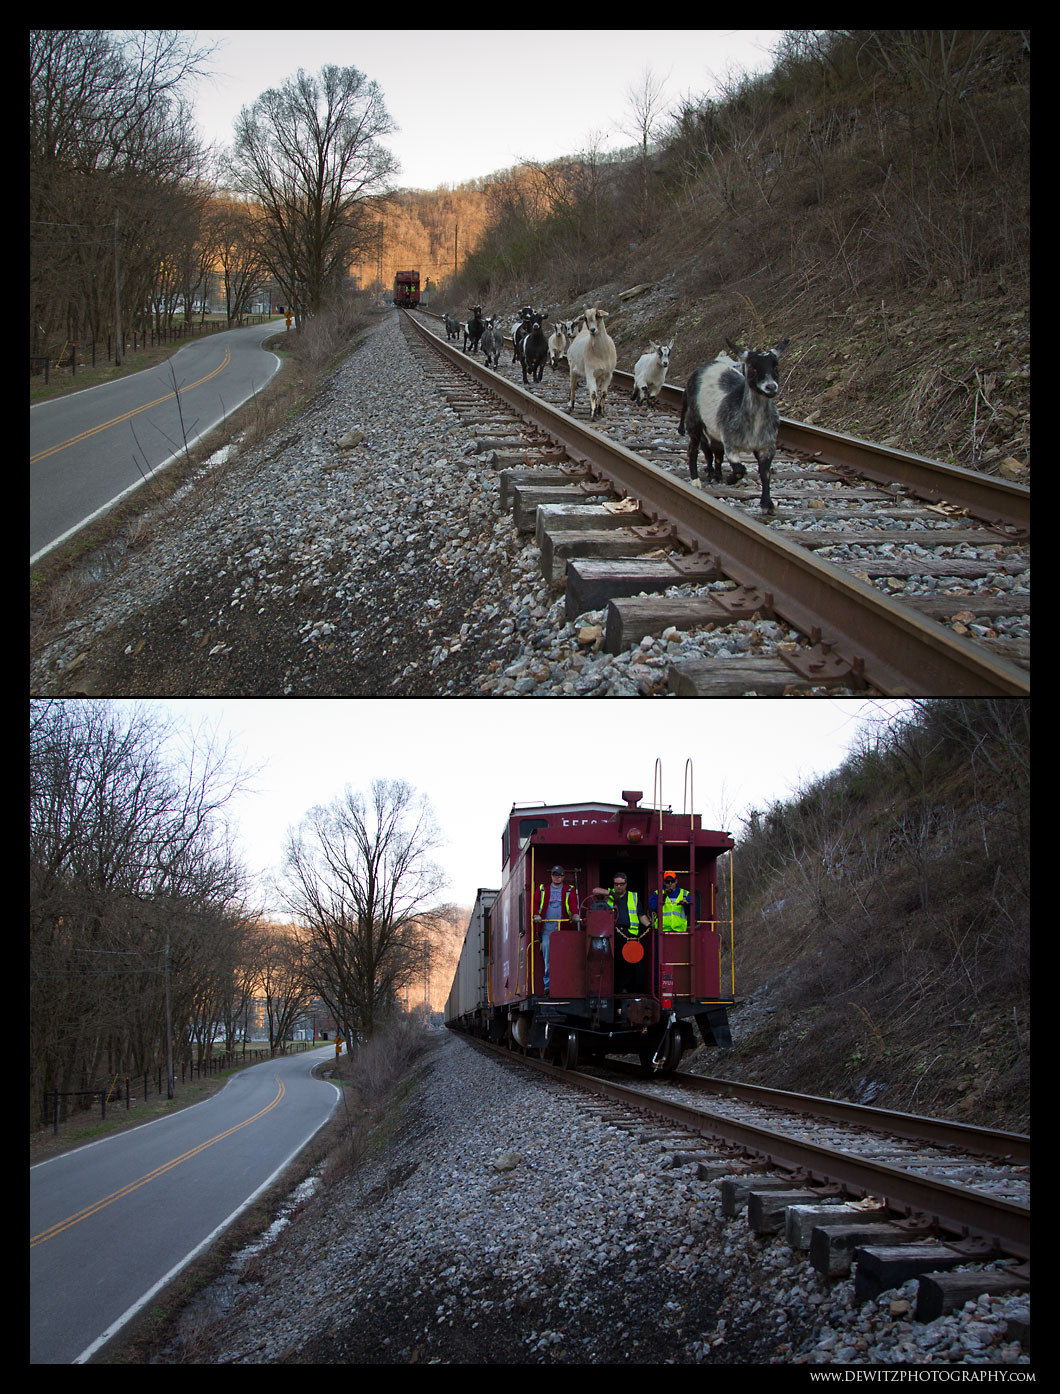 NW Caboose and Goats on the Tracks